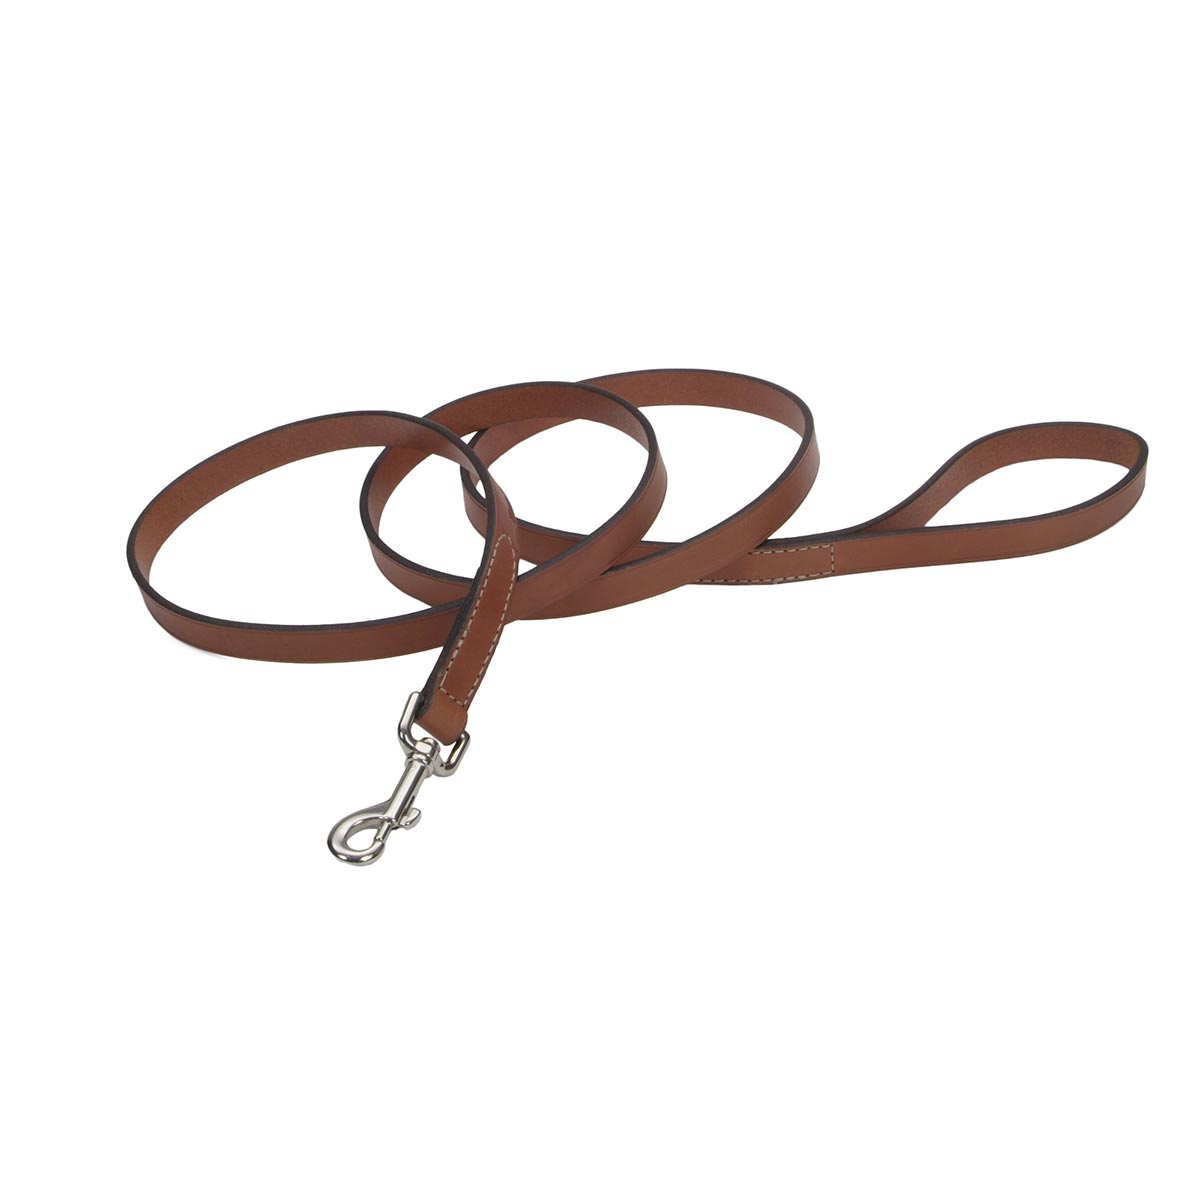 3/4 inches by 6 feet Tan Oak Tanned Leather Lead